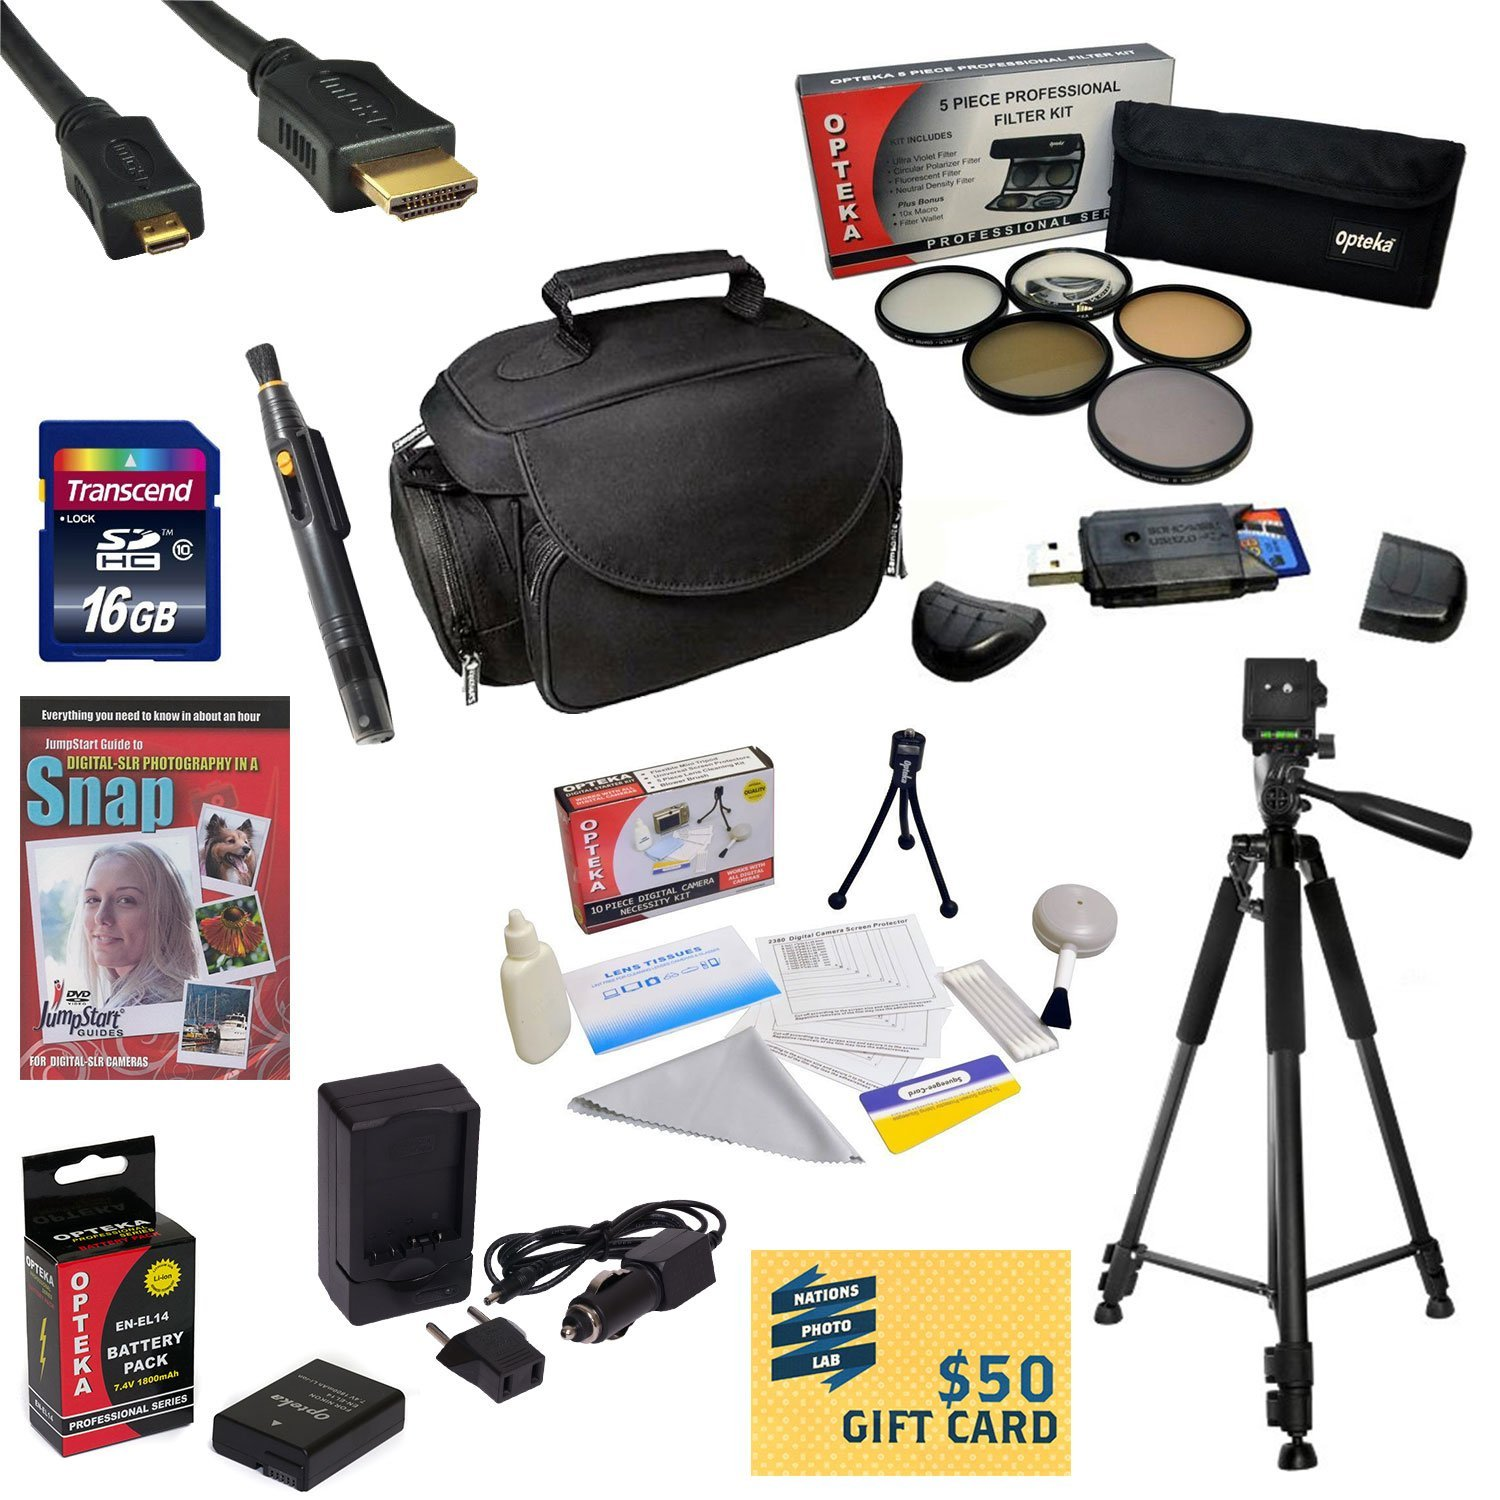 Best Value Kit for Nikon D5300 16GB SDHC Card, Card Reader, Battery, Charger, 67MM 5 Piece Pro Filter Kit, HDMI Cable, Padded Gadget Bag, Tripod, Lens Pen, Cleaning Kit, DVD, $50 Gift Card, More